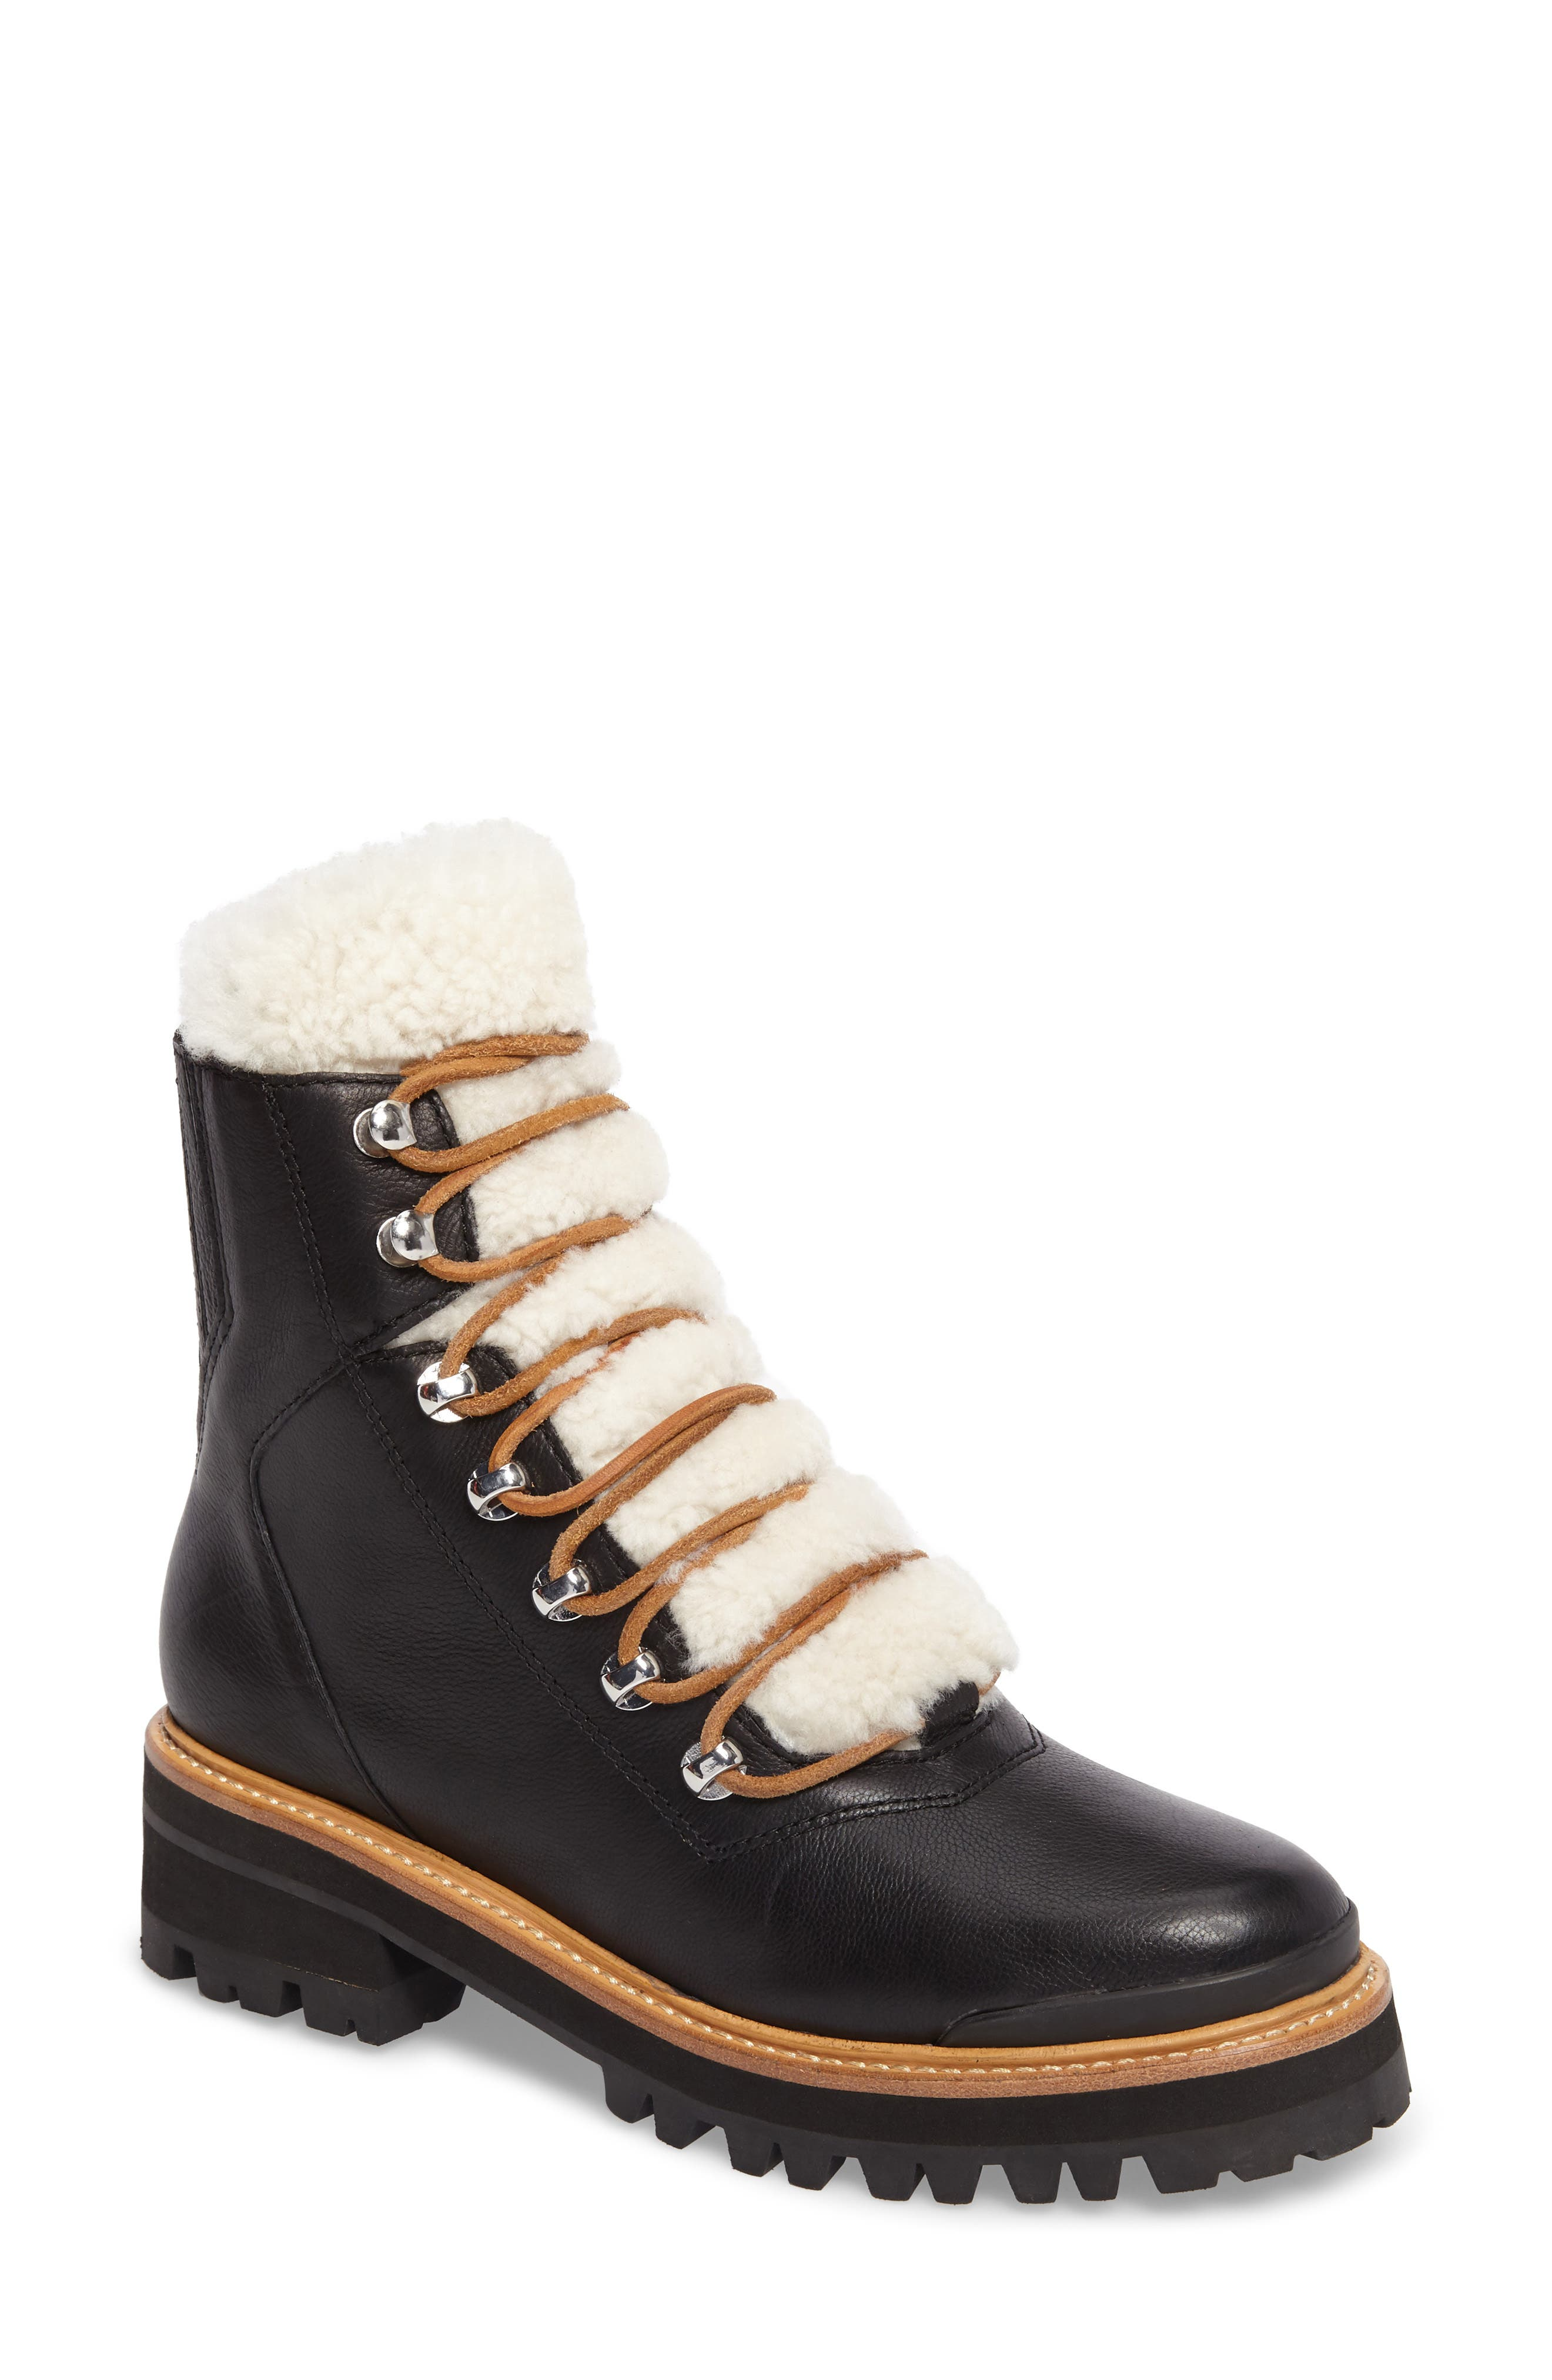 MARC FISHER LTD, Izzie Genuine Shearling Lace-Up Boot, Main thumbnail 1, color, BLACK LEATHER